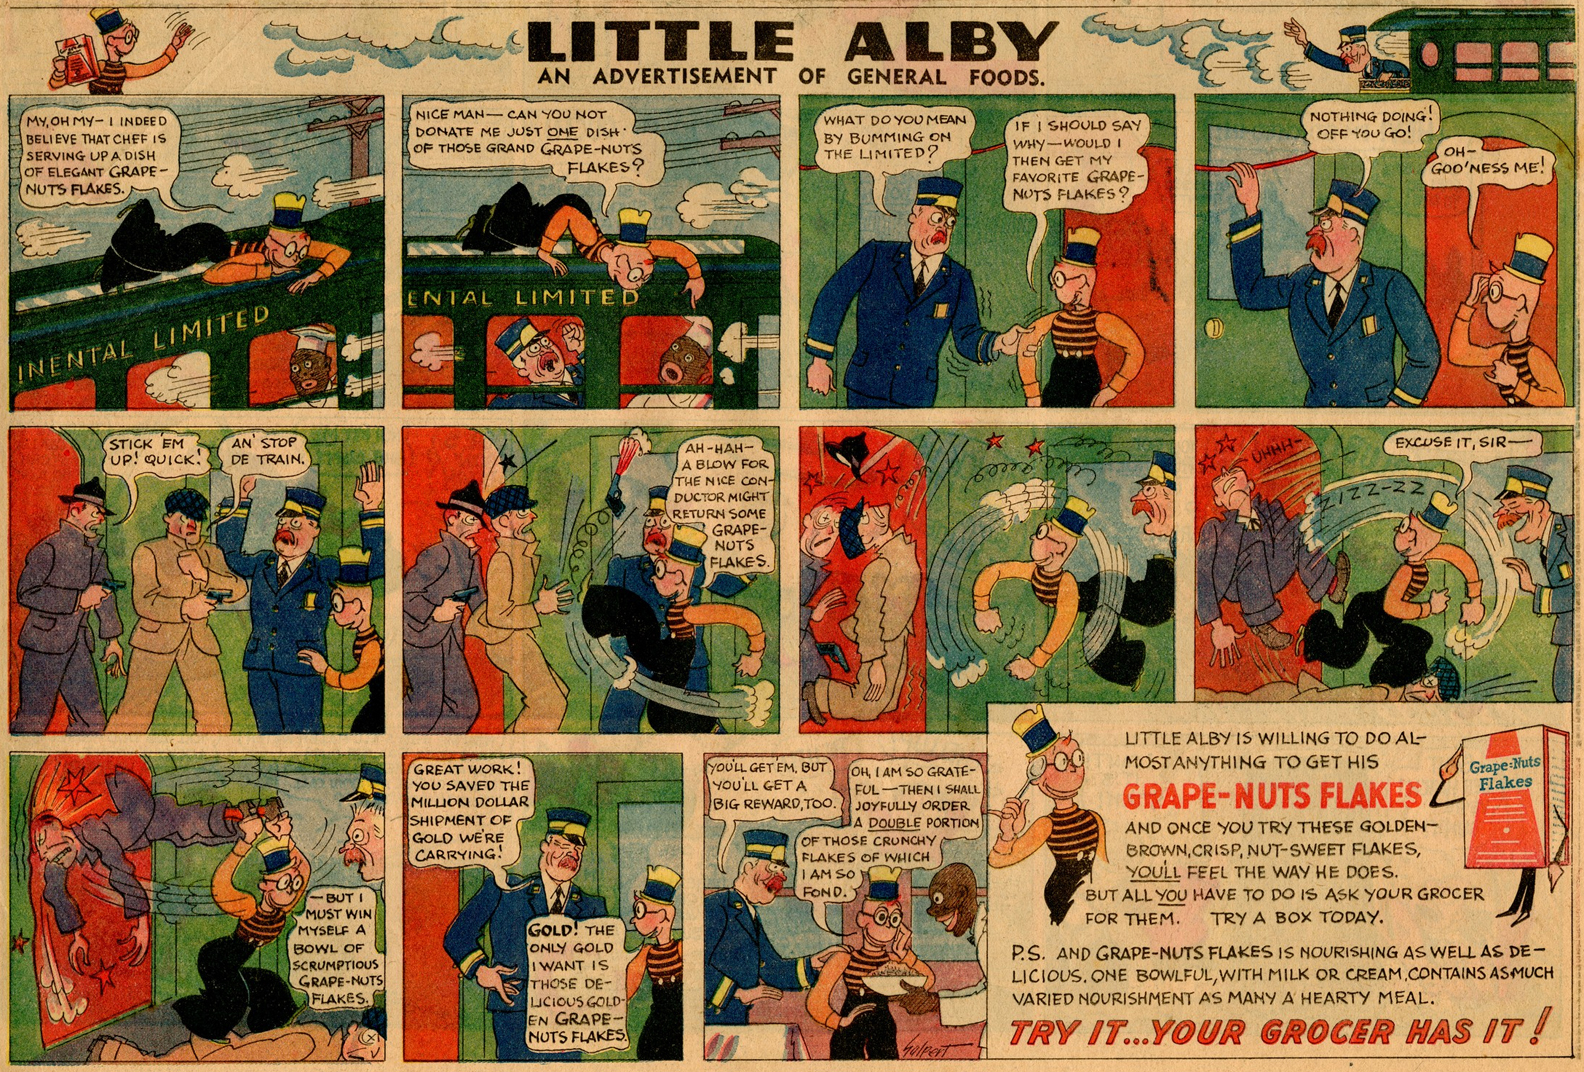 Little Alby for Grape-Nuts